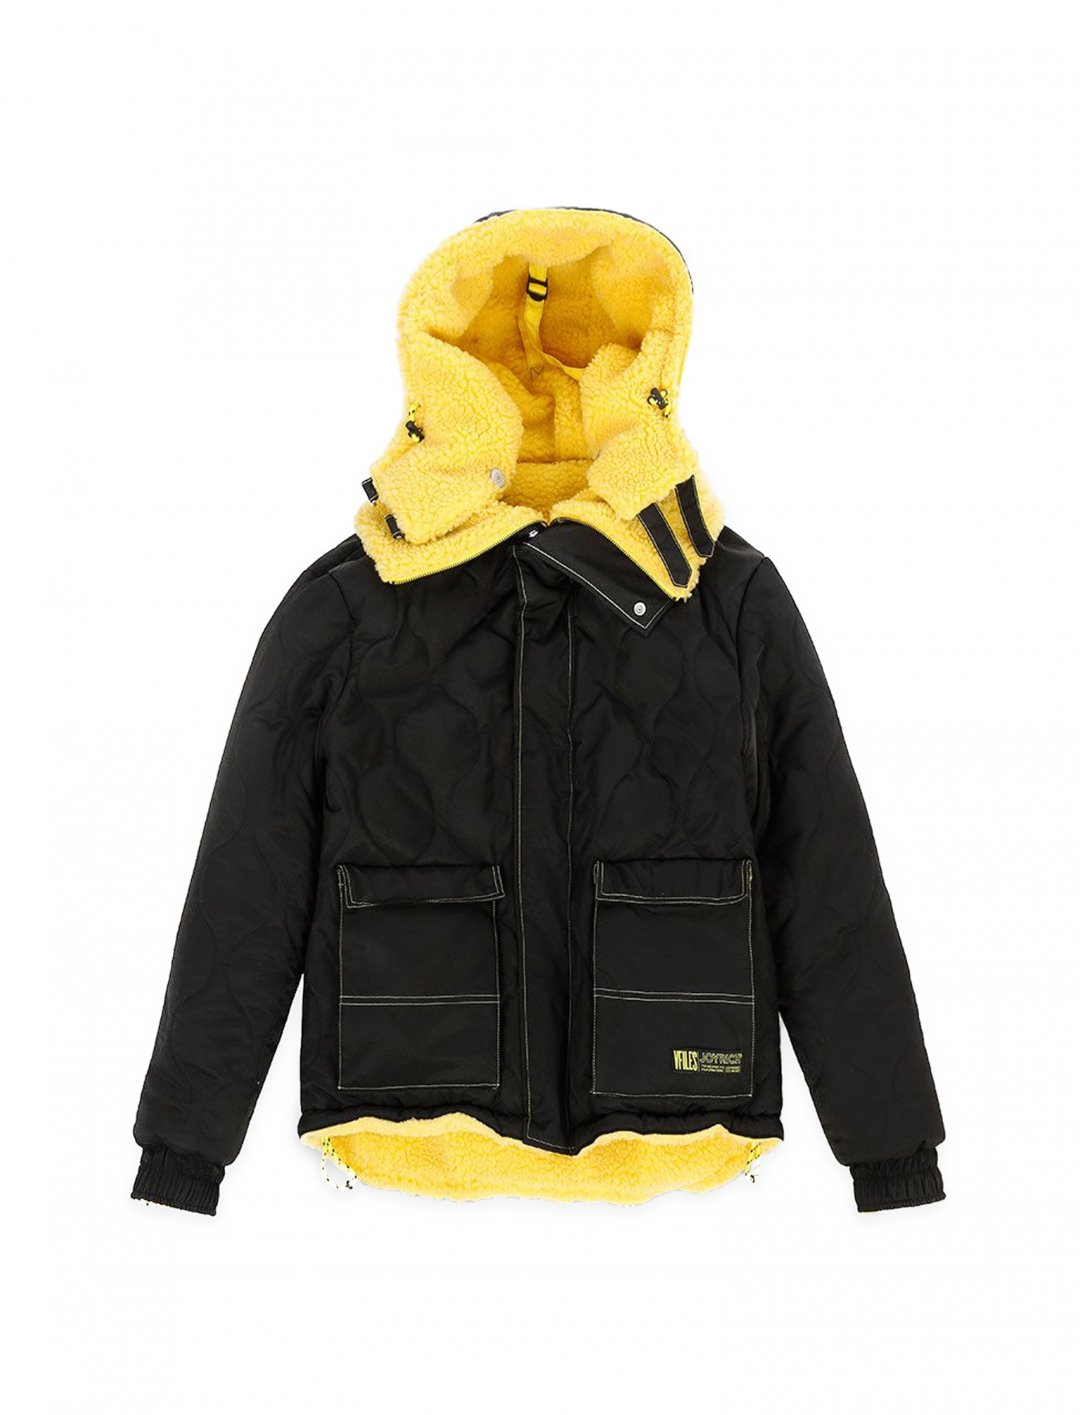 "Reversible Puffy Jacket {""id"":5,""product_section_id"":1,""name"":""Clothing"",""order"":5} Joyrich x VFiles"